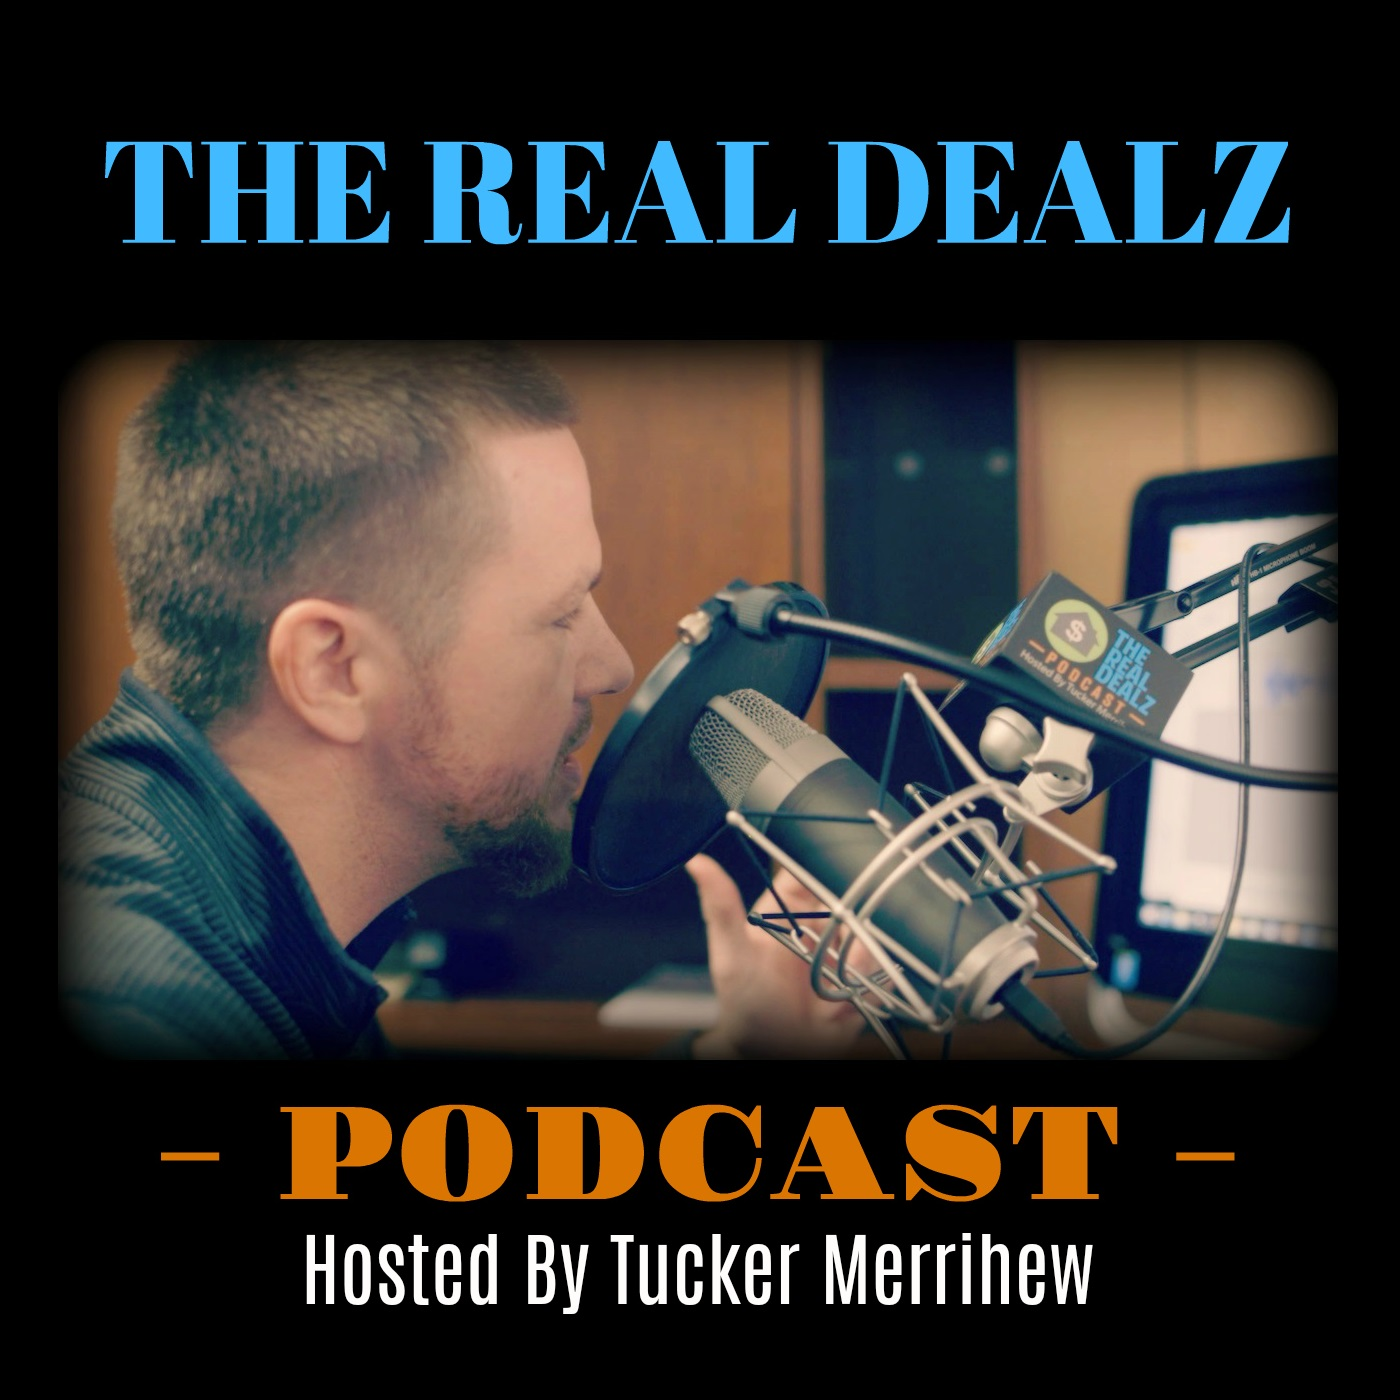 The Real Dealz Podcast - Real Estate Investing Unfiltered! How to get started in real estate investing, wholesaling, new construction, rehabbing, house flipping, multifamily and development. Learn what Robert Kiyosaki and Donald Trump's books don't teach!